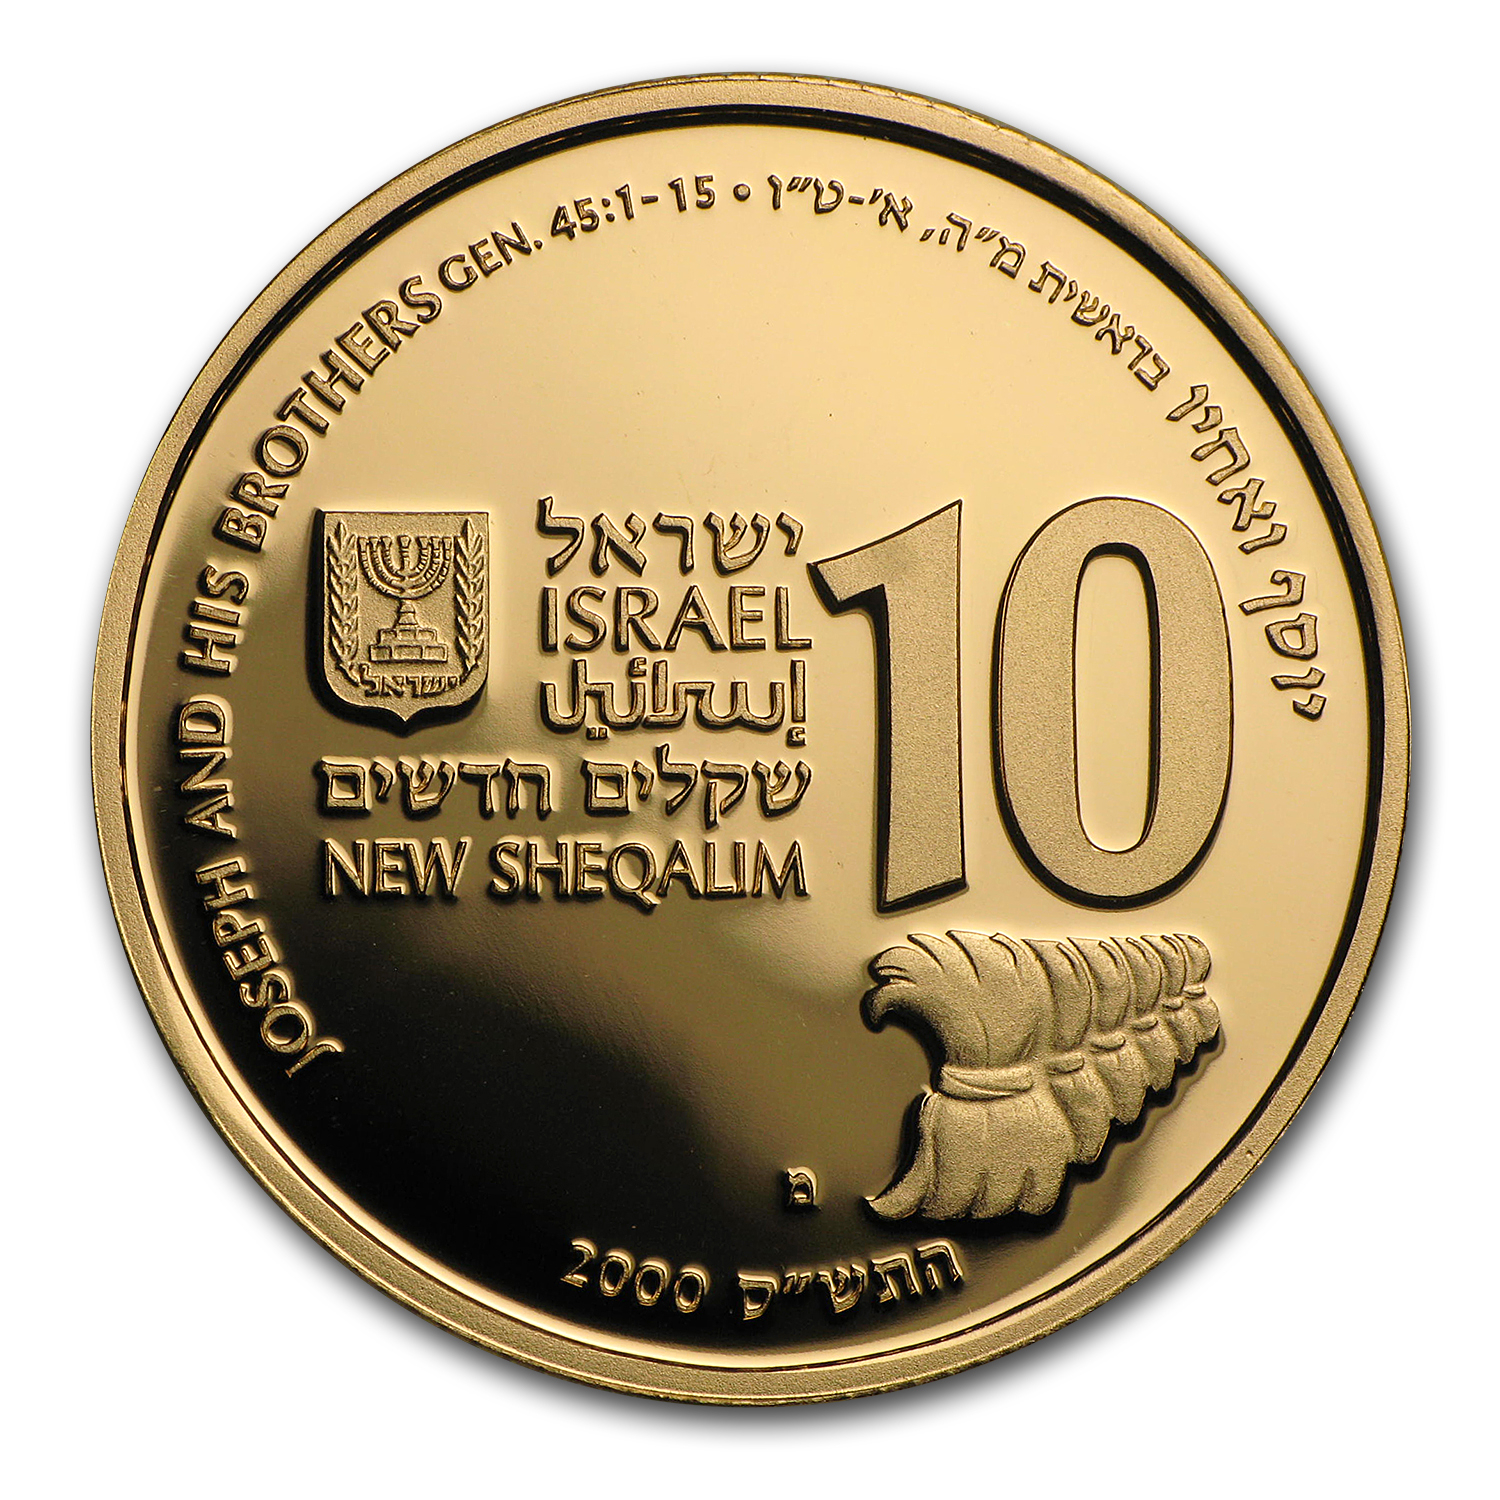 2000 Israel Proof Gold 10 Sheqalim Joseph and his Brothers